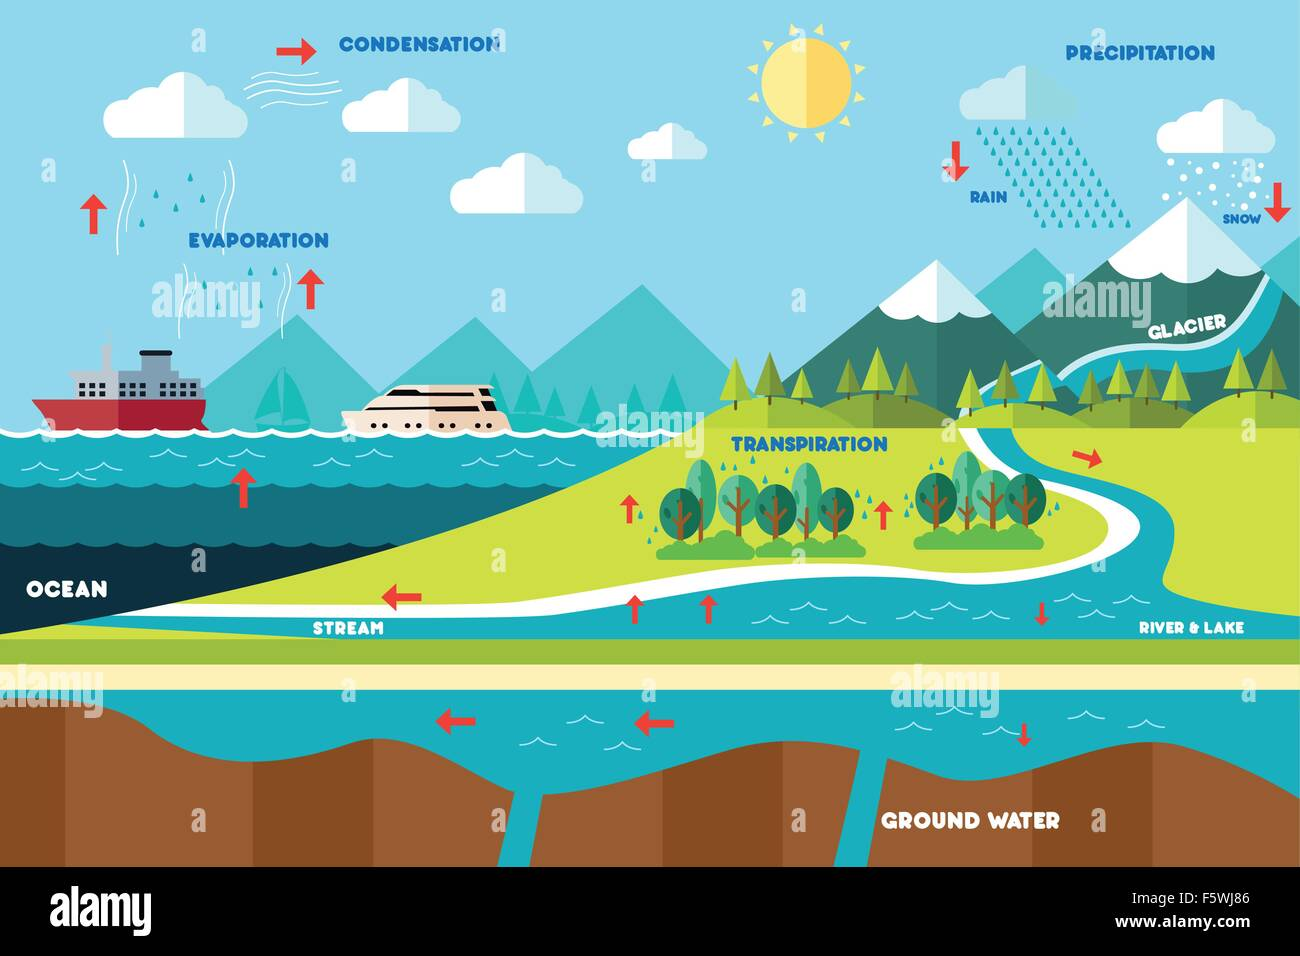 water cycle images.html